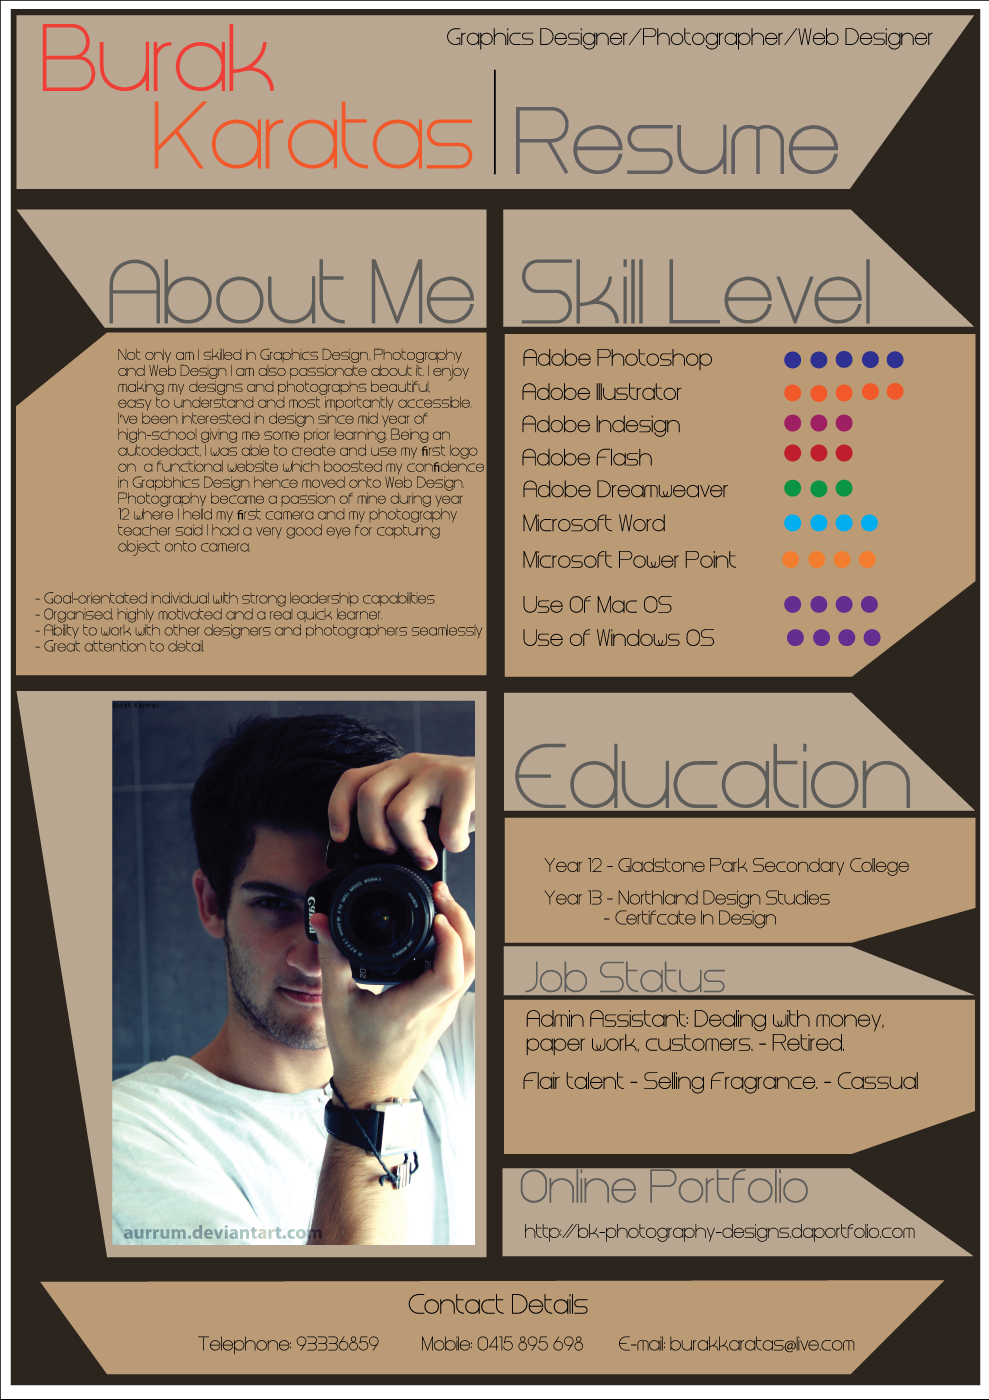 How to create an infographic resume: